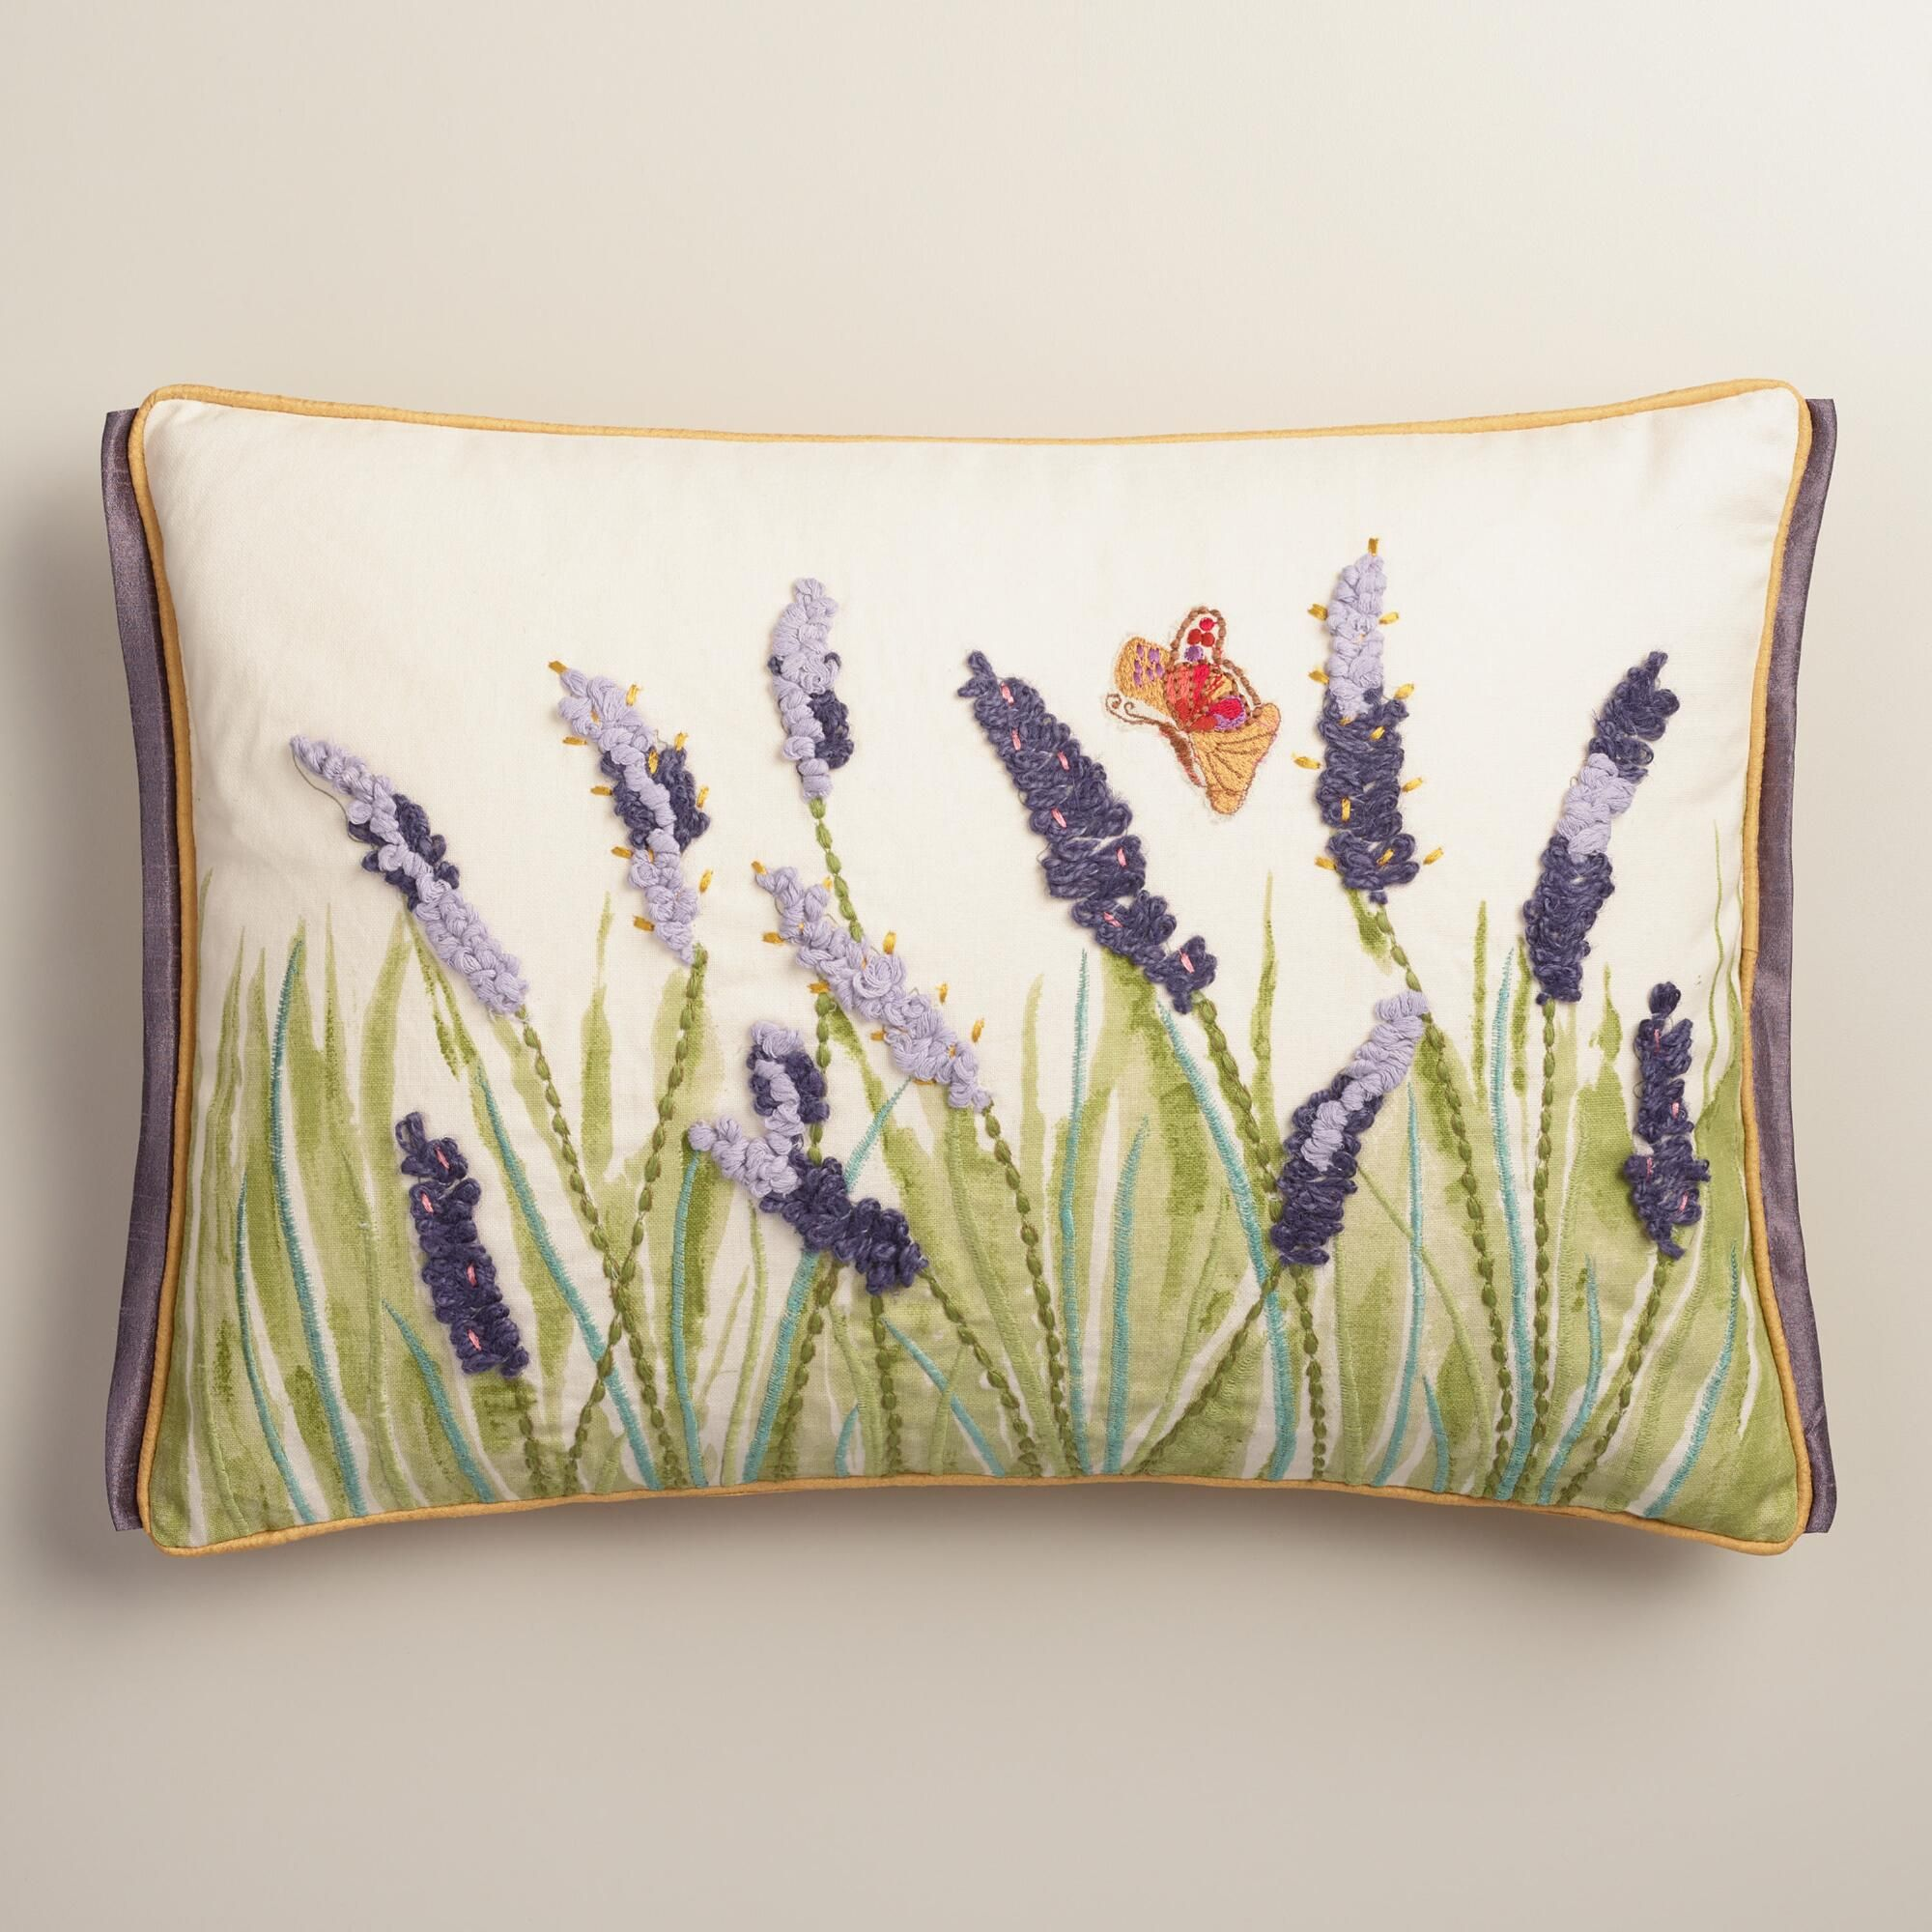 Featuring our enchanting floral design with intricate embroidery, crocheted yarn details, lavender flange and piping, this exclusive throw pillow is an artful accent with three-dimensional flair and a dupioni back.